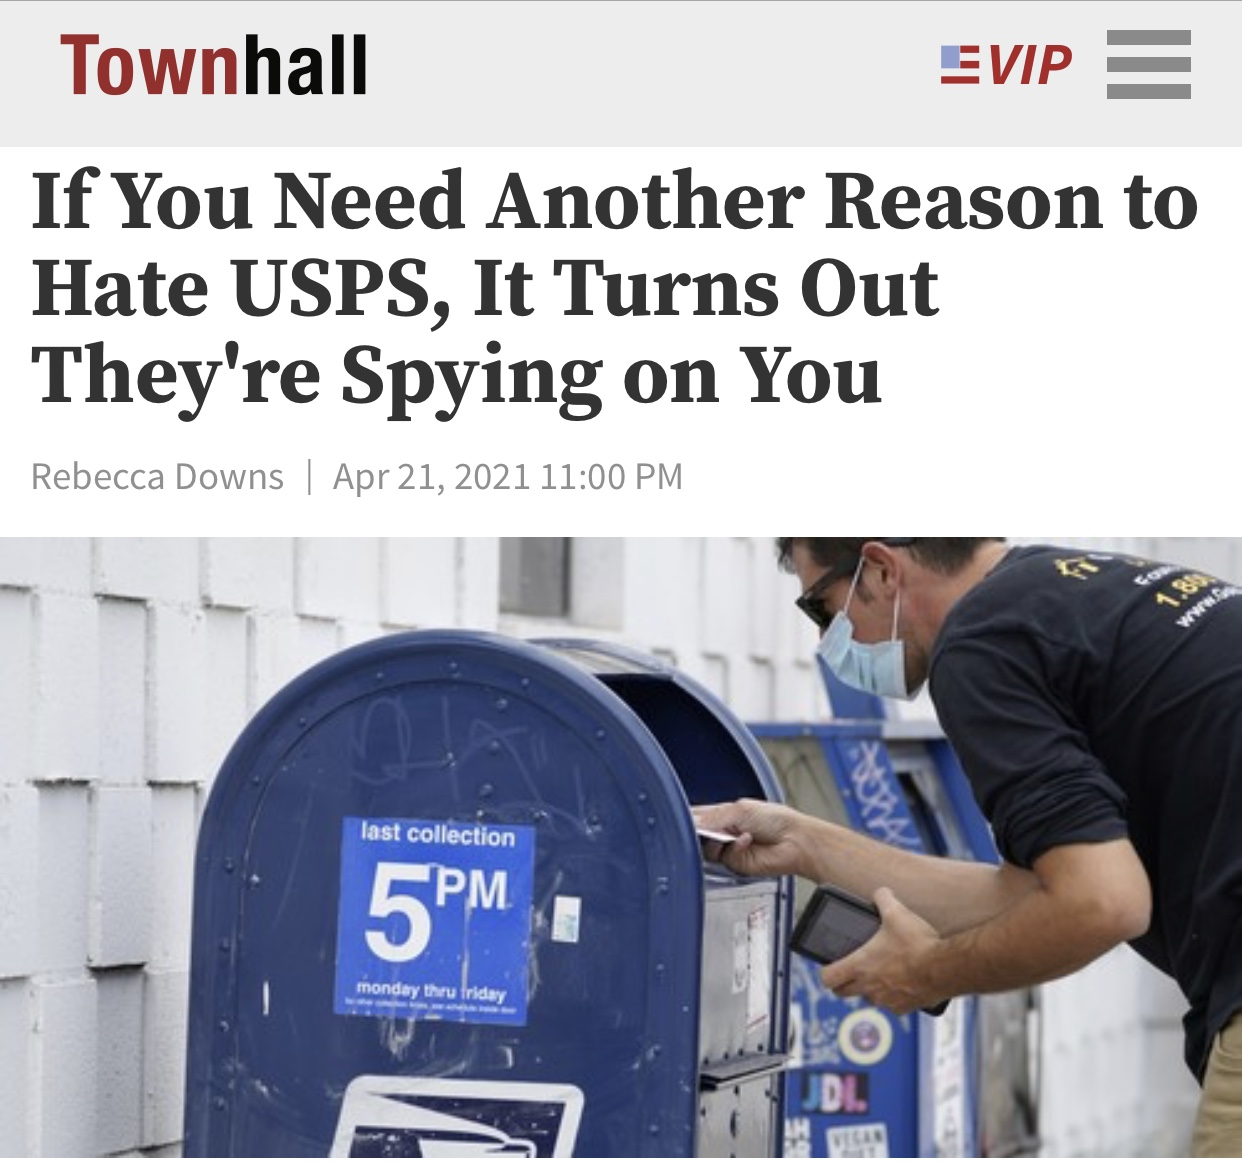 If You Need Another Reason to Hate USPS, It Turns Out They're Spying on You